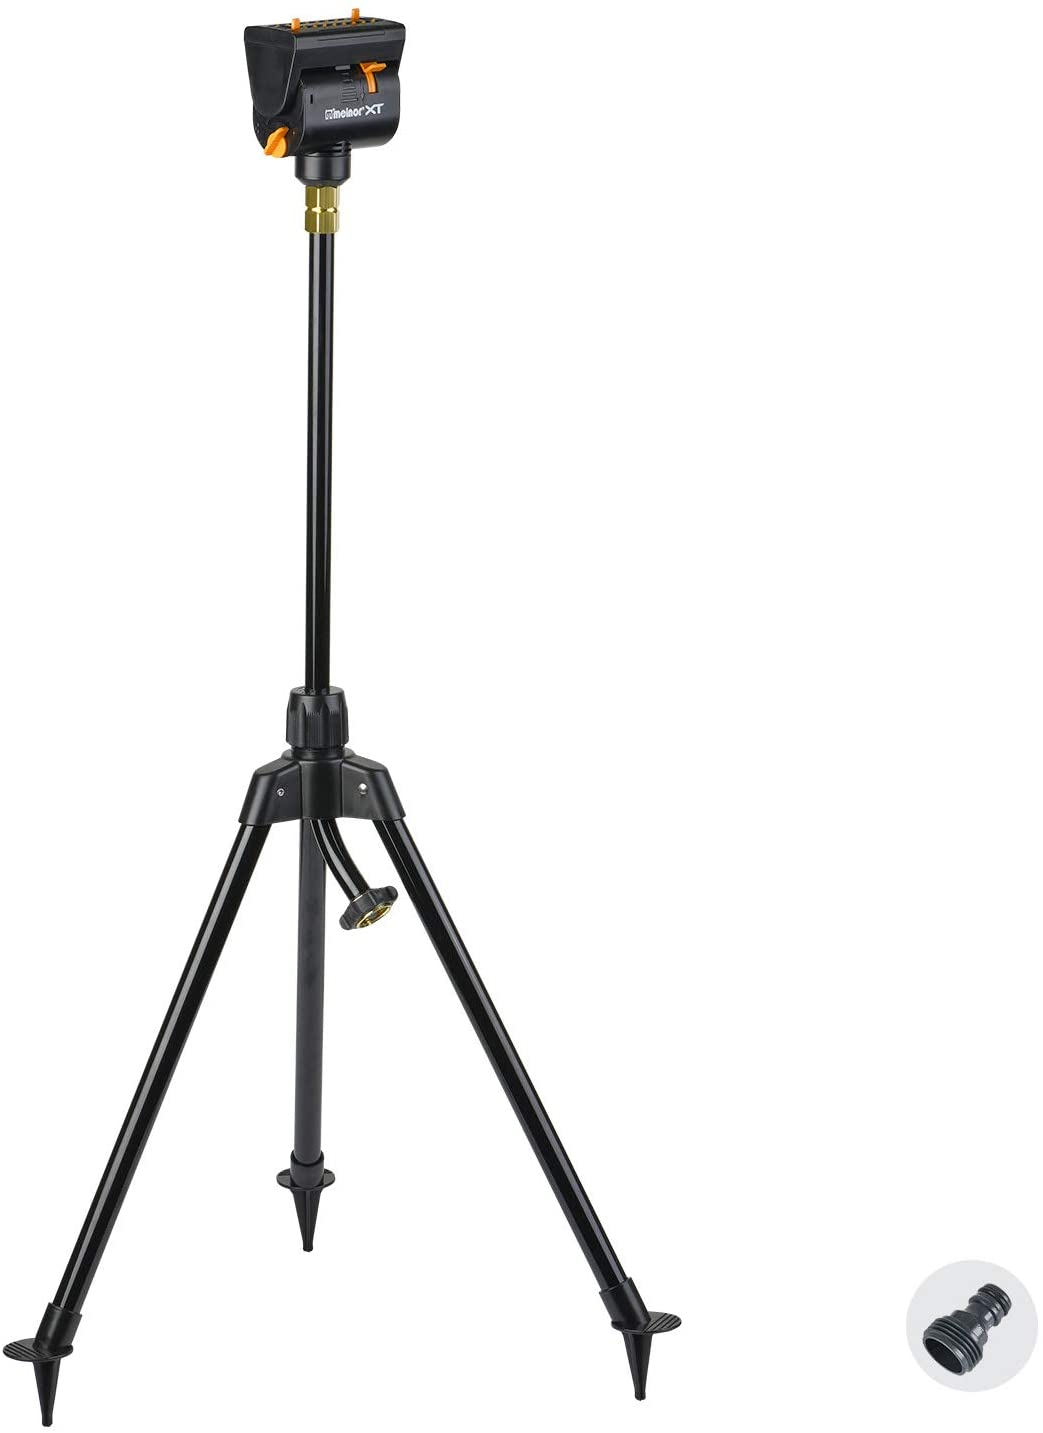 Melnor 65115-AMZ MiniMax Turbo Oscillating Sprinkler on Tripod with QuickConnect Product Adapter Amazon Bundle